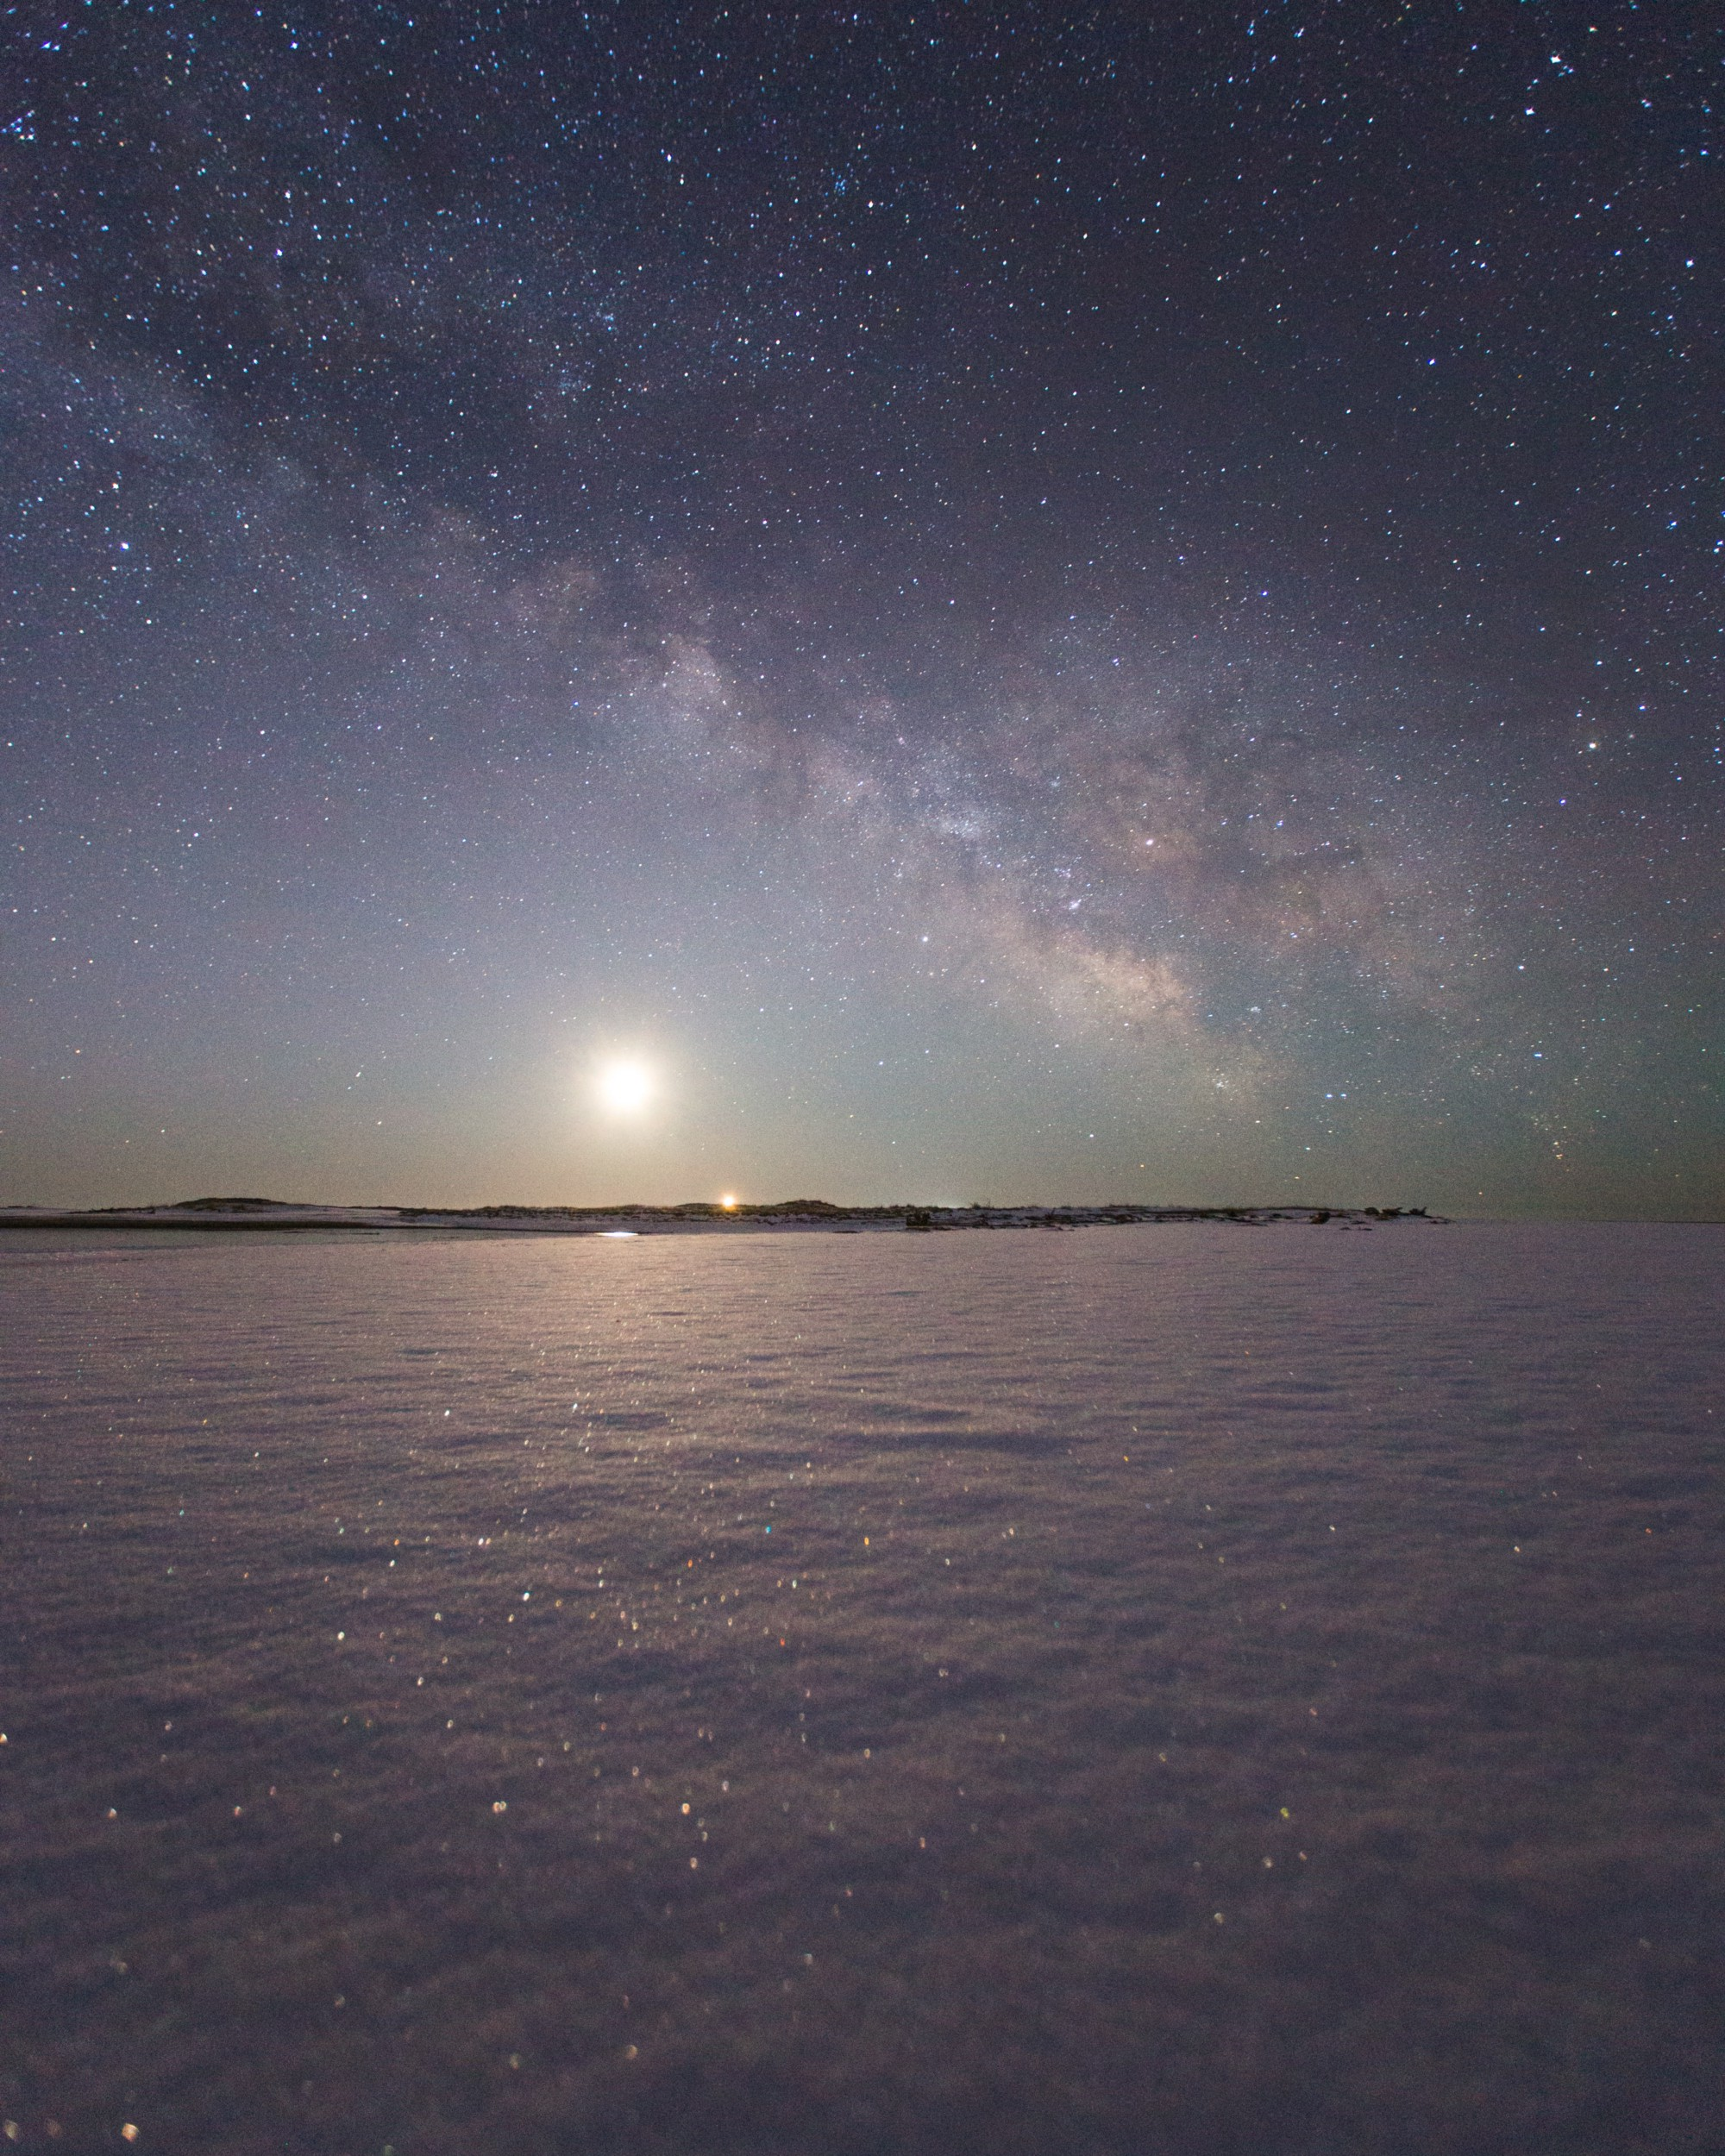 Snow-covered intertidal flats in Maine reflecting milky way and low sun